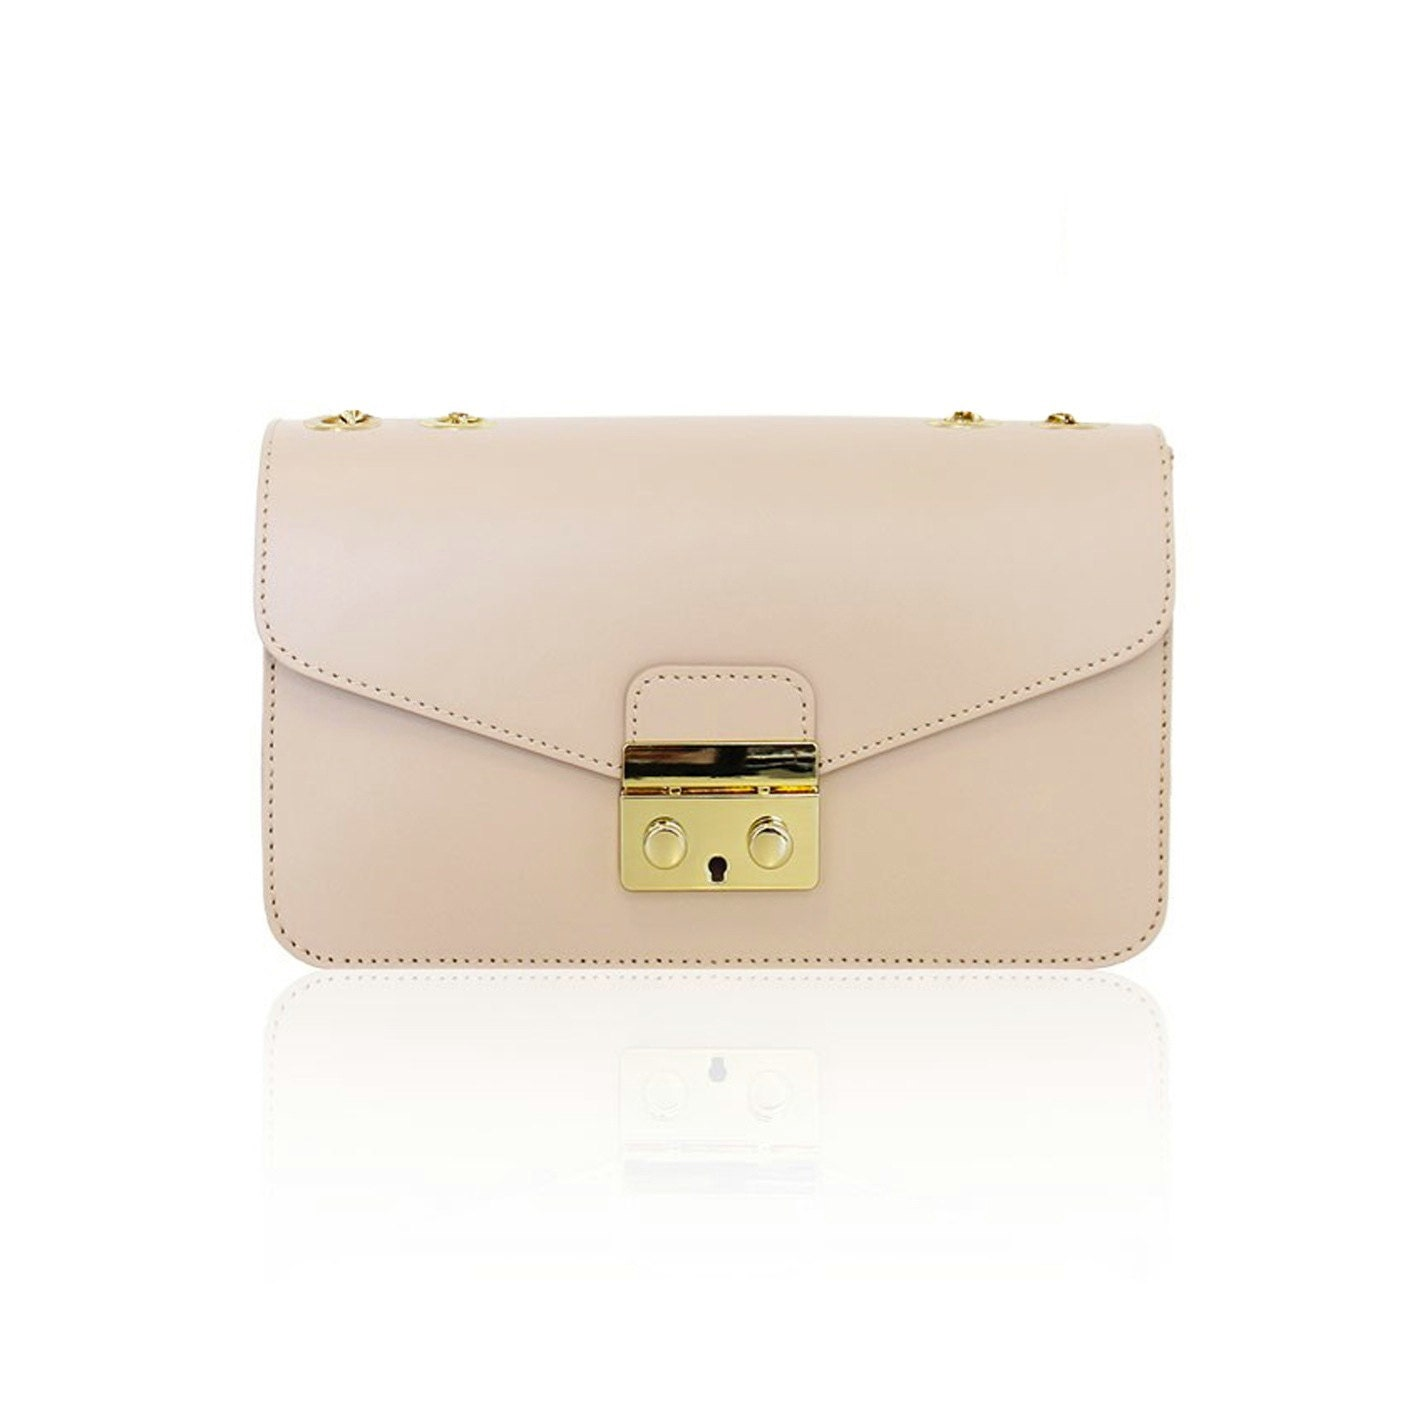 a82ae00b713af AMELIA Italian Baguette clutch mini bag with light gold plated chain smooth  leather, evening clutch mini bag, light gold snap, Italian bag